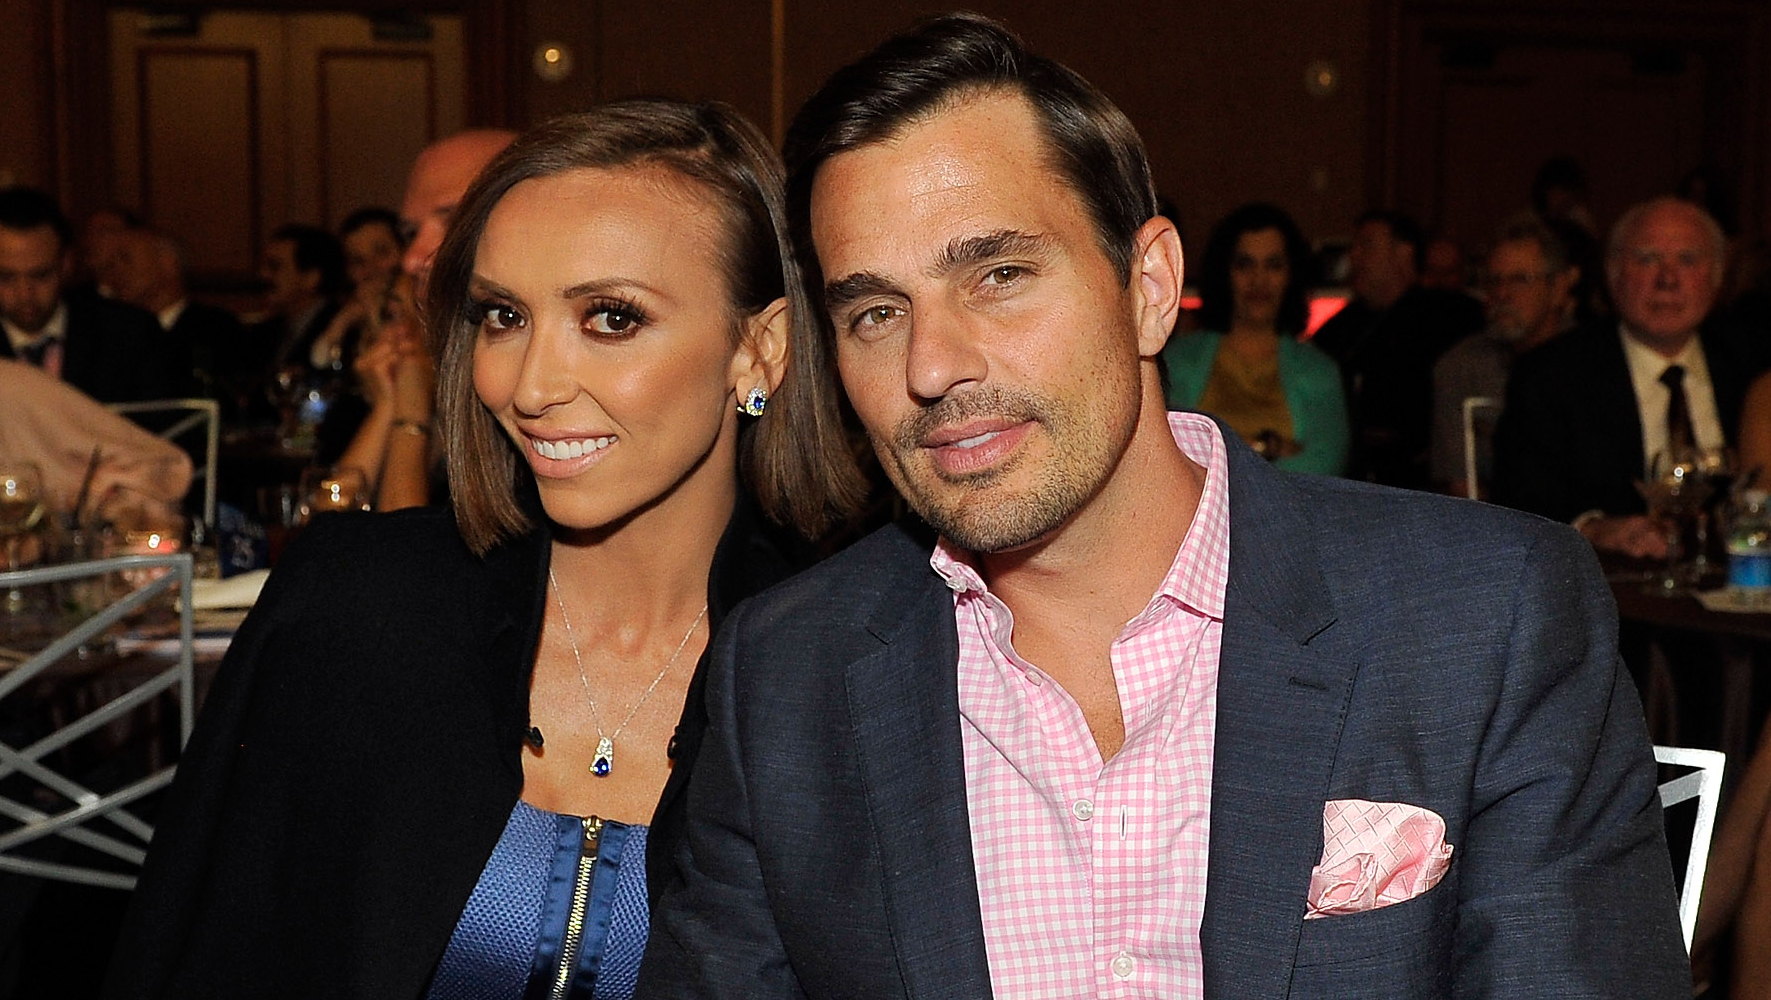 giuliana rancic and bill host dating show